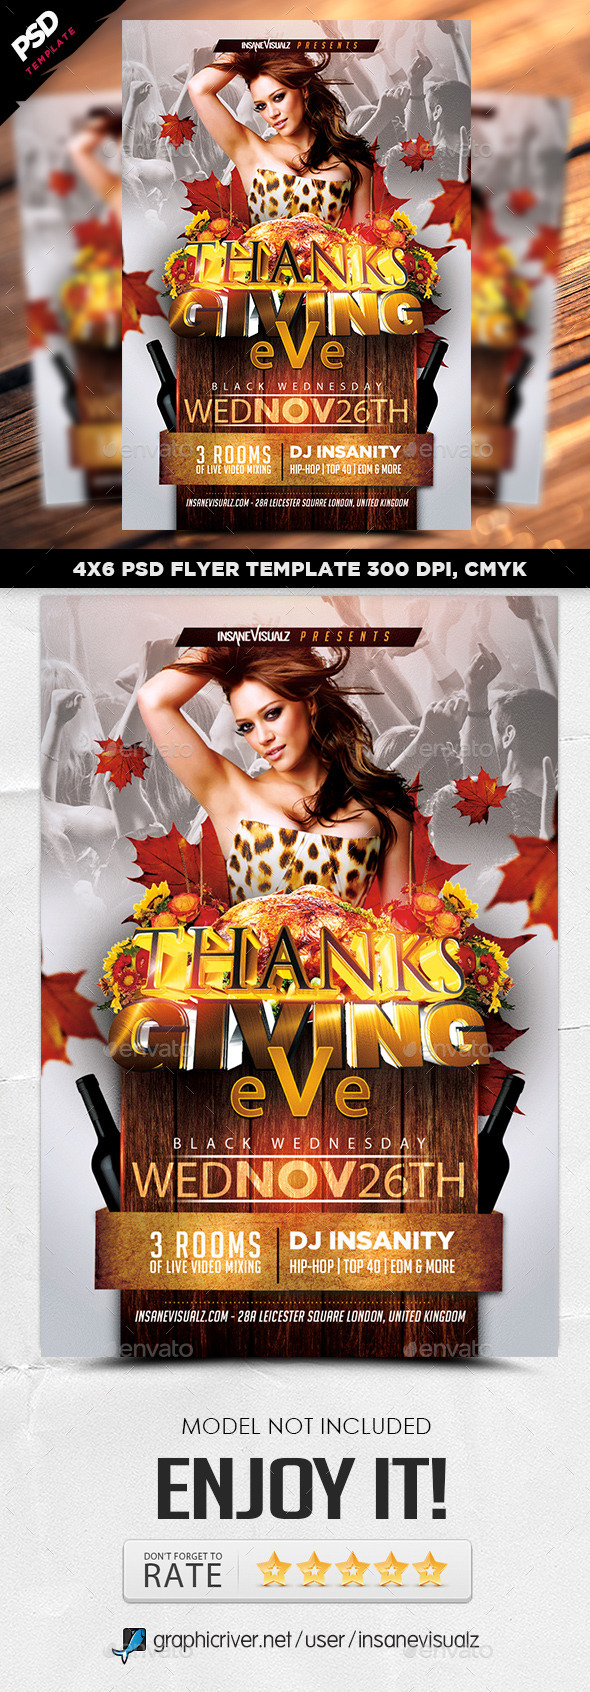 Thanksgiving Eve 2014 Flyer